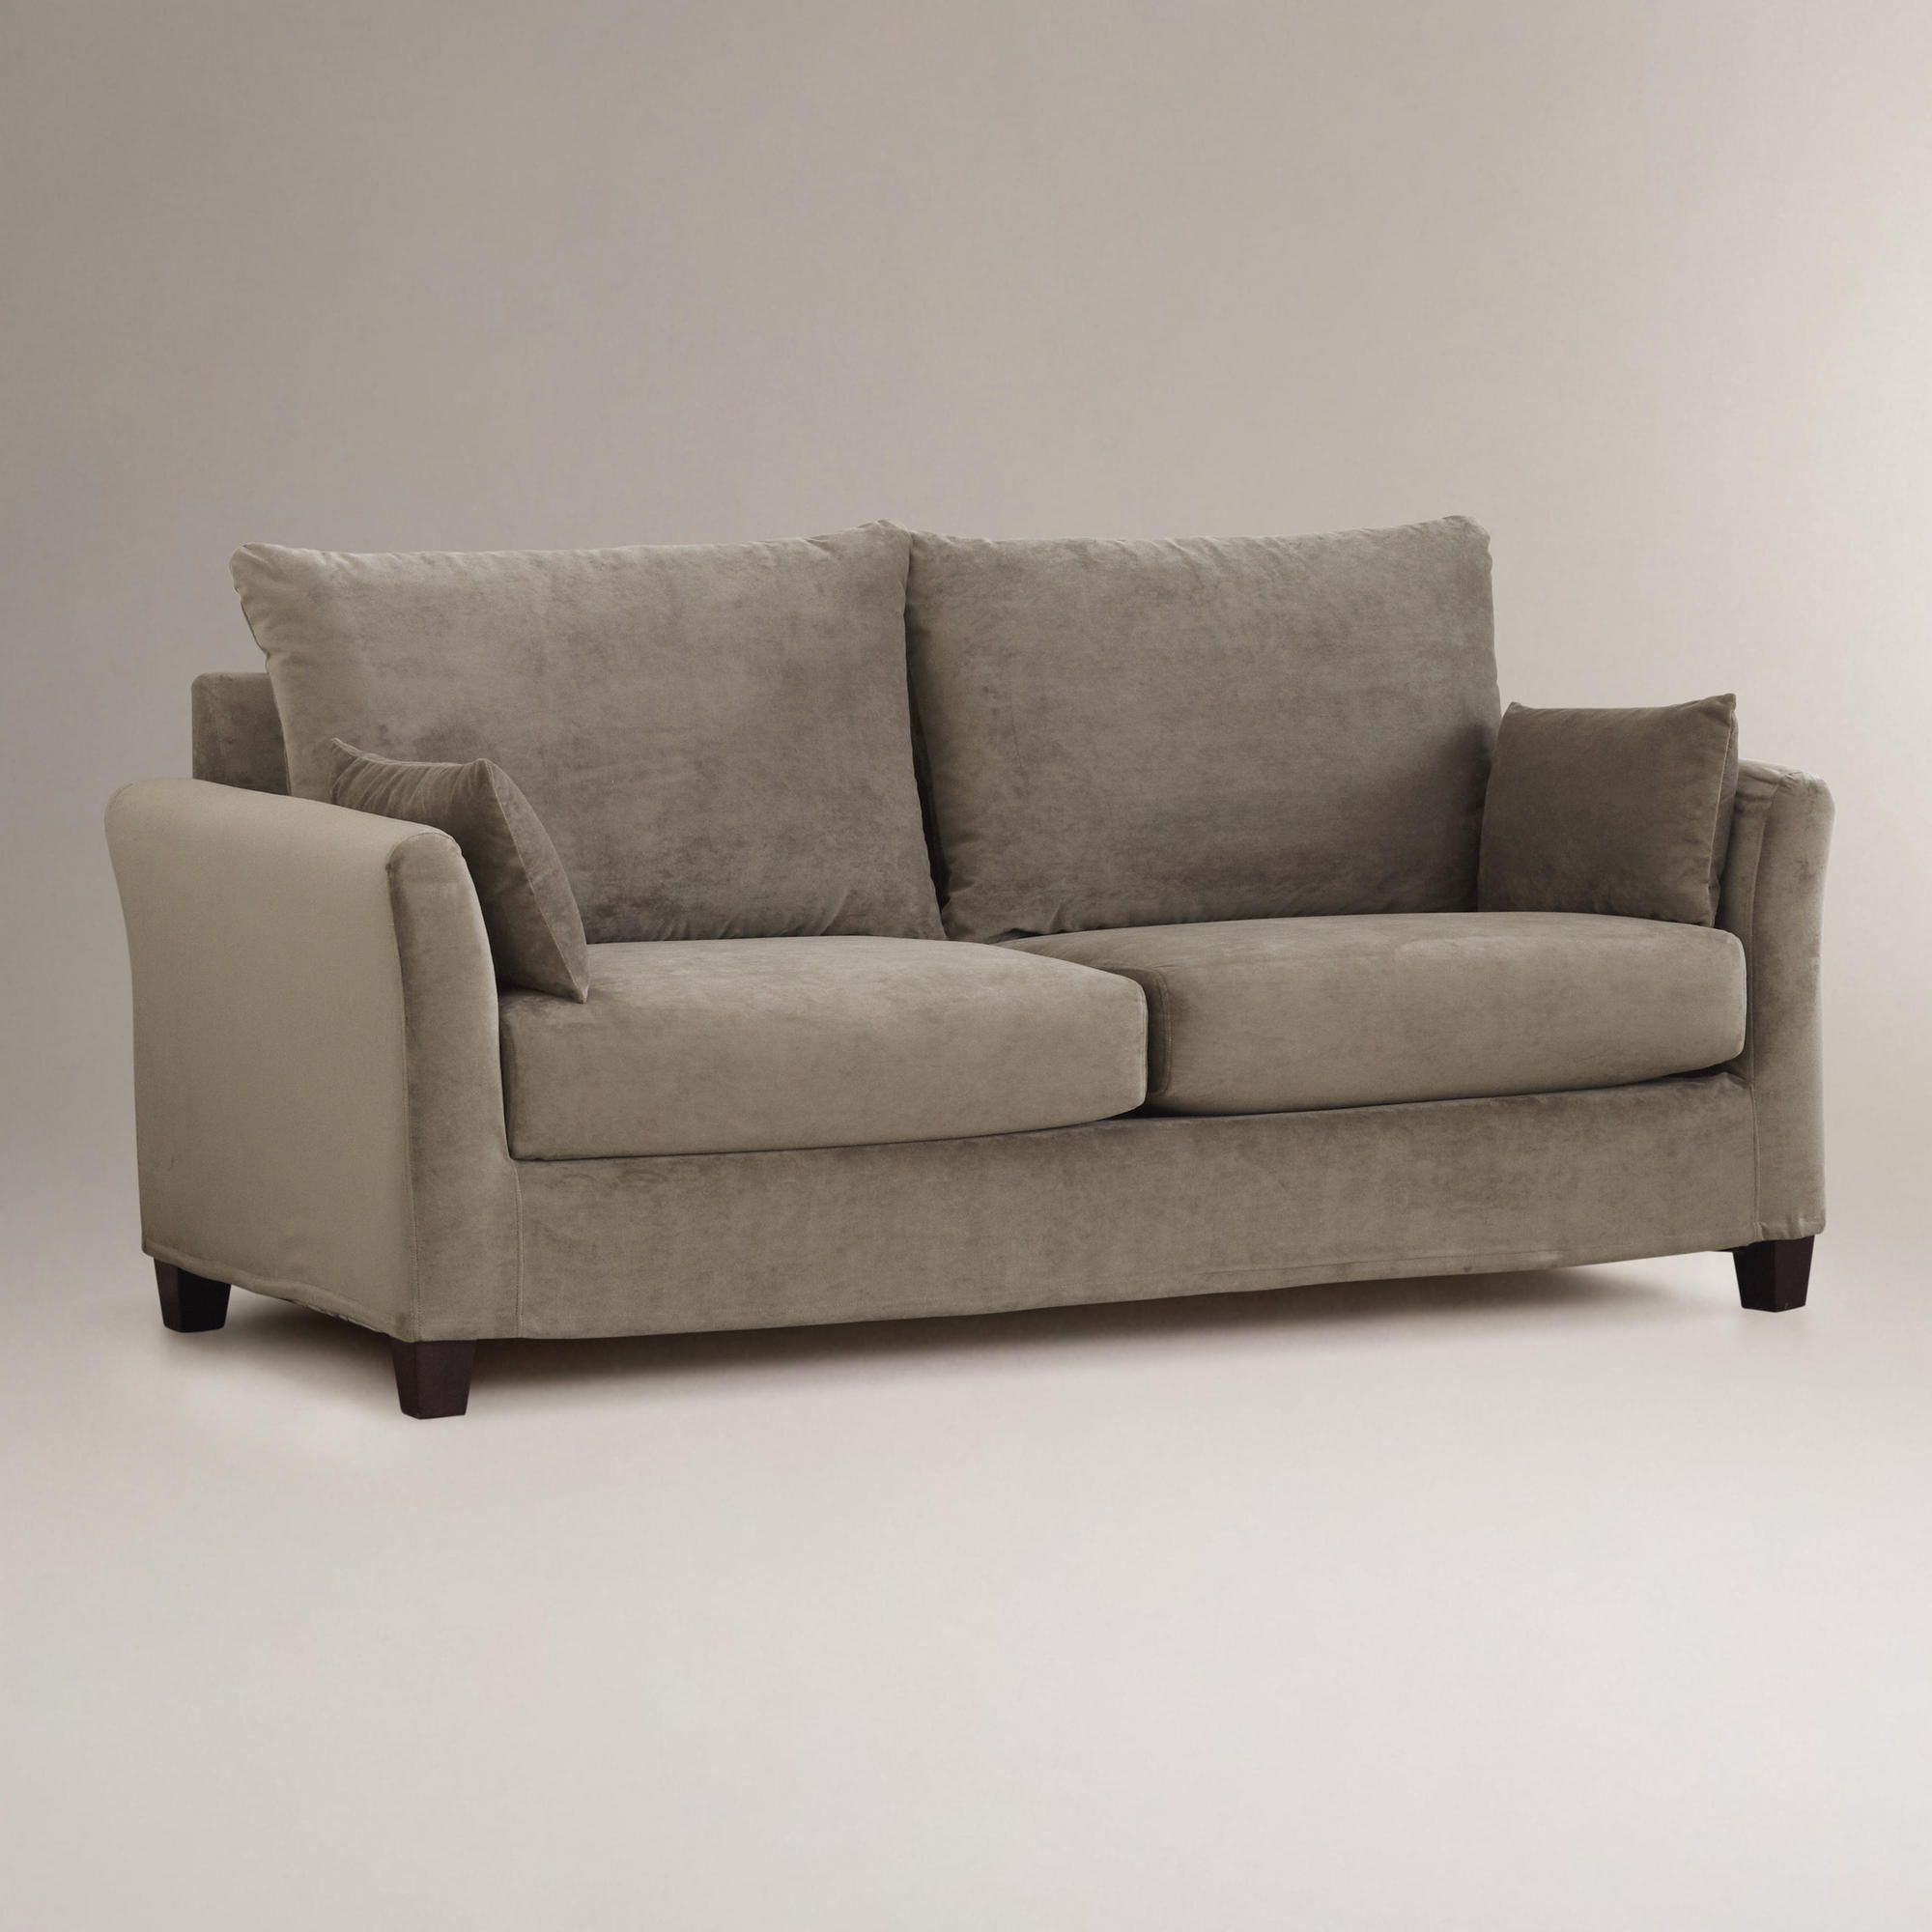 market ebay slipcover cost sofa loveseat plus ivory world chair luxe